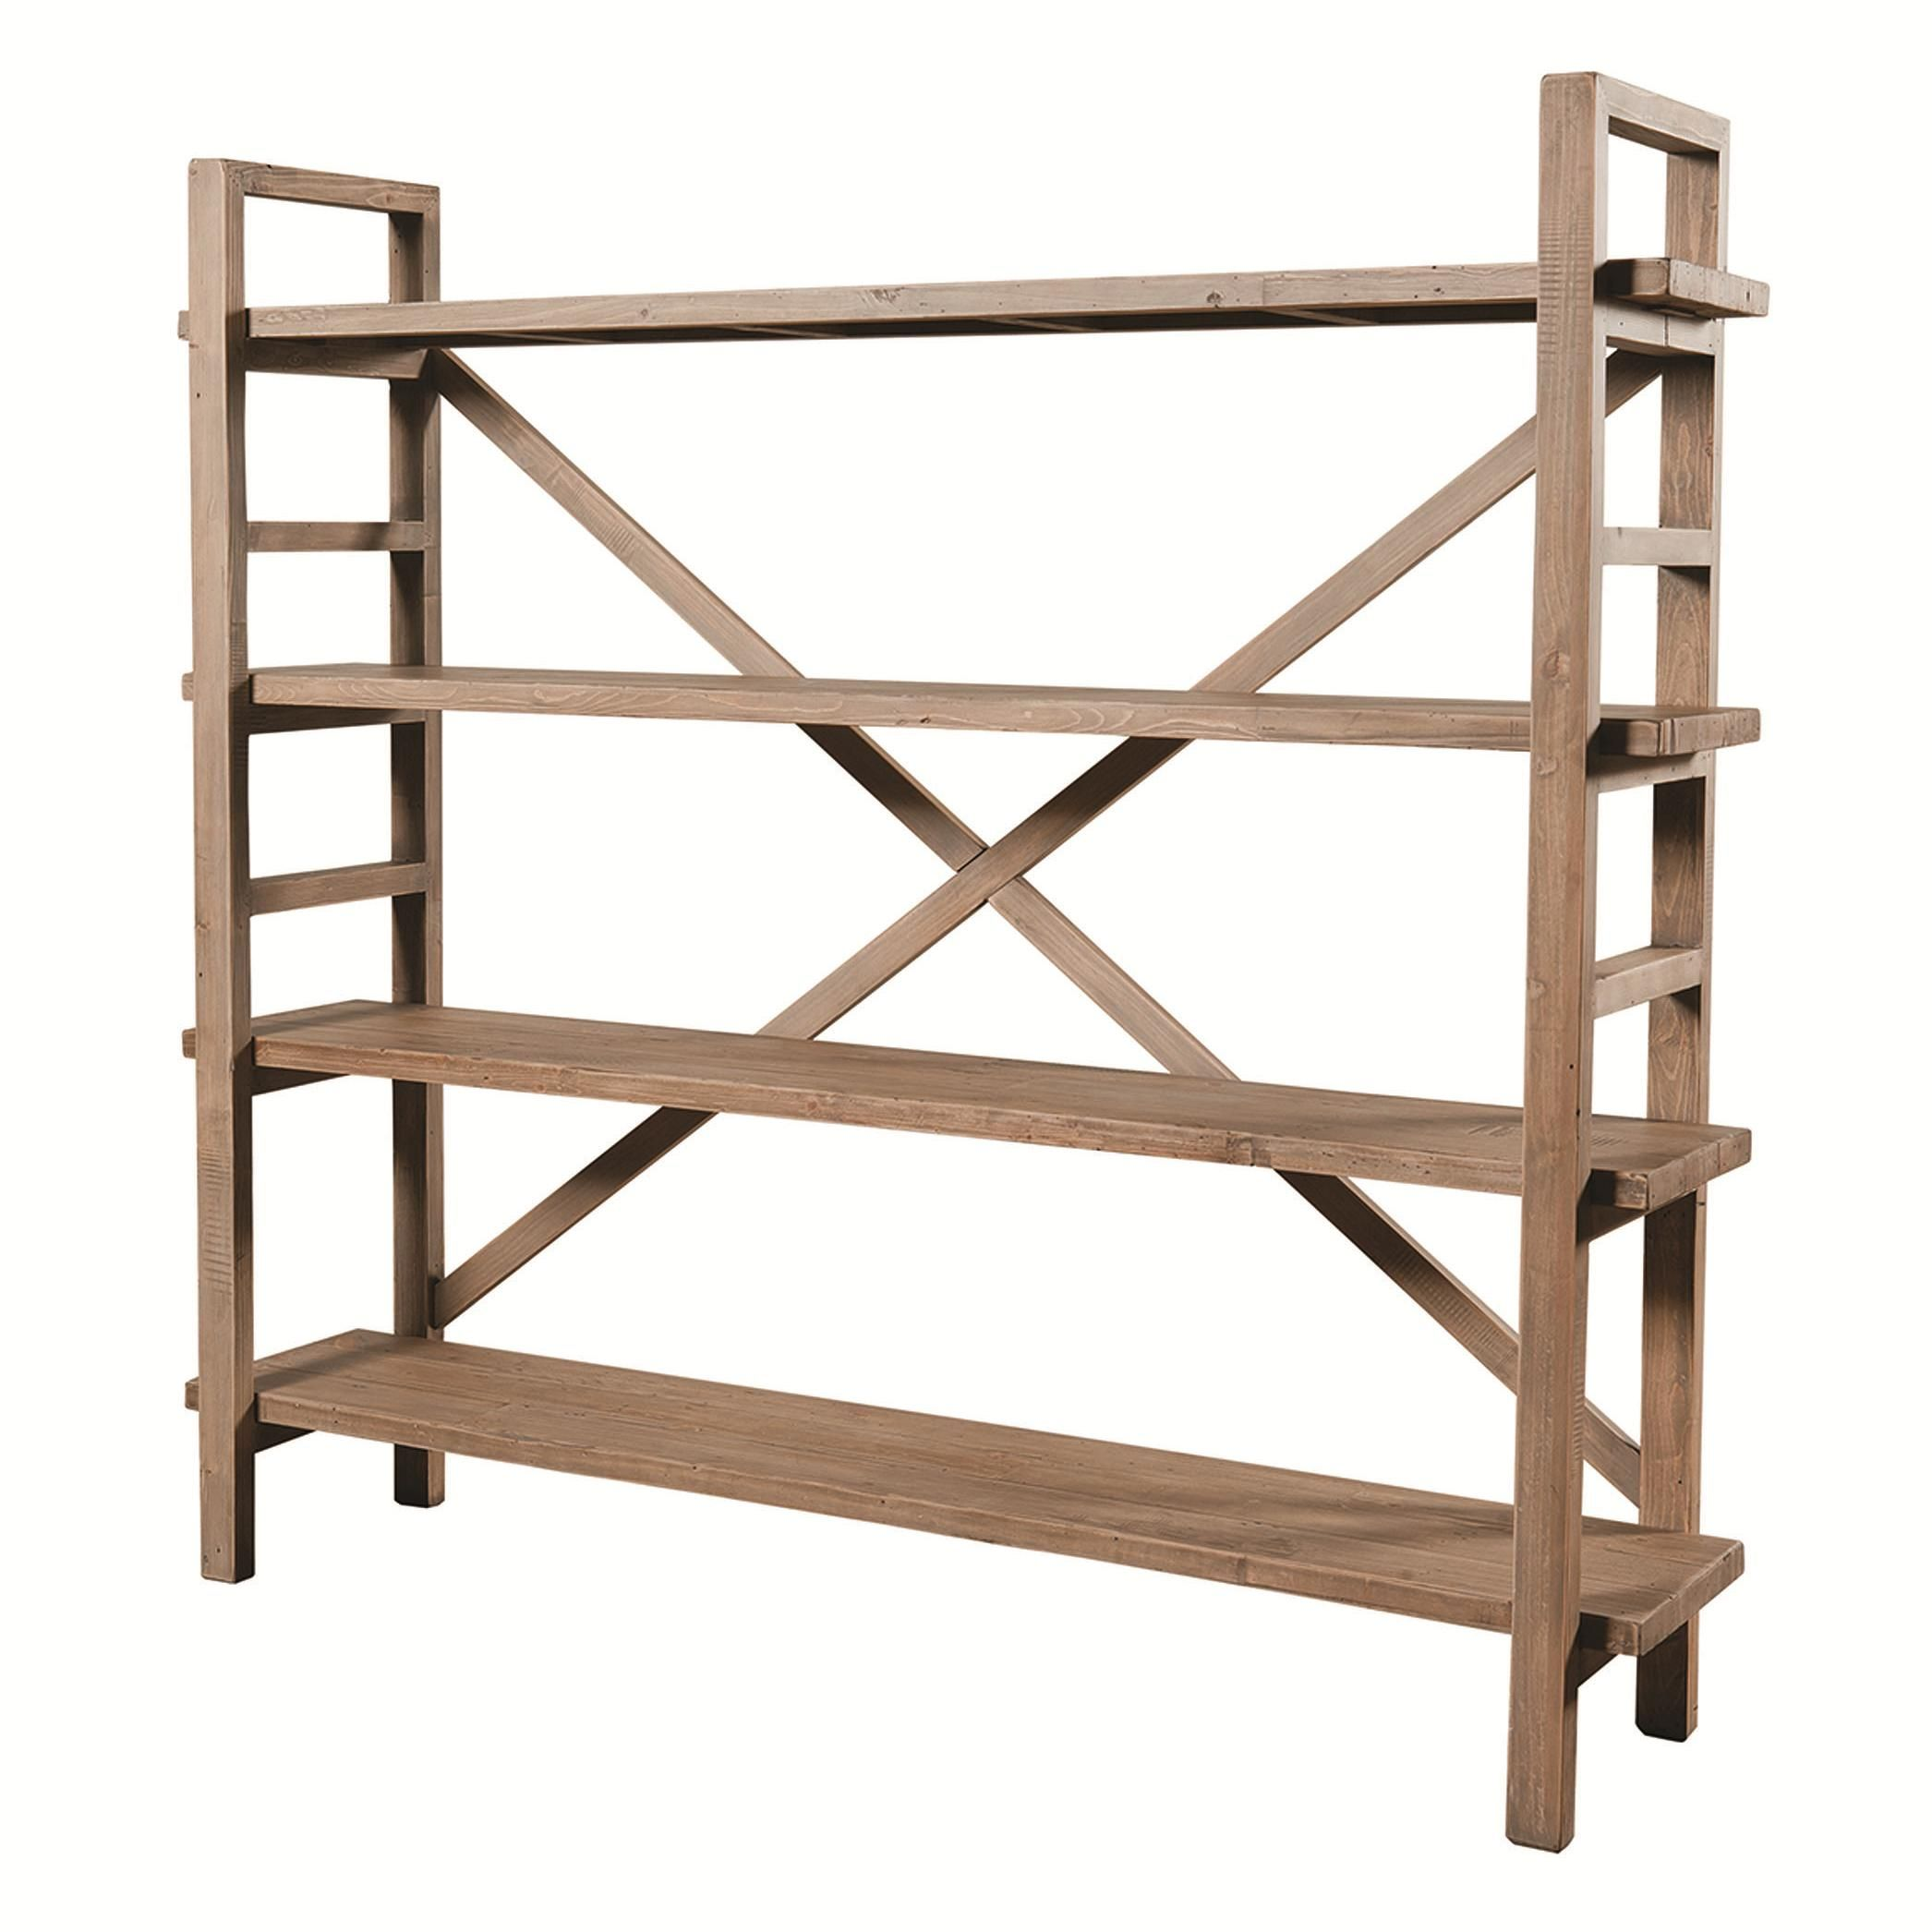 Sunset Beach Toscana Open Bookshelf With X Style Back By Urban Classic Designs At Reeds Furniture Eclectic Bookcases Bookshelves Diy Large Bookshelves